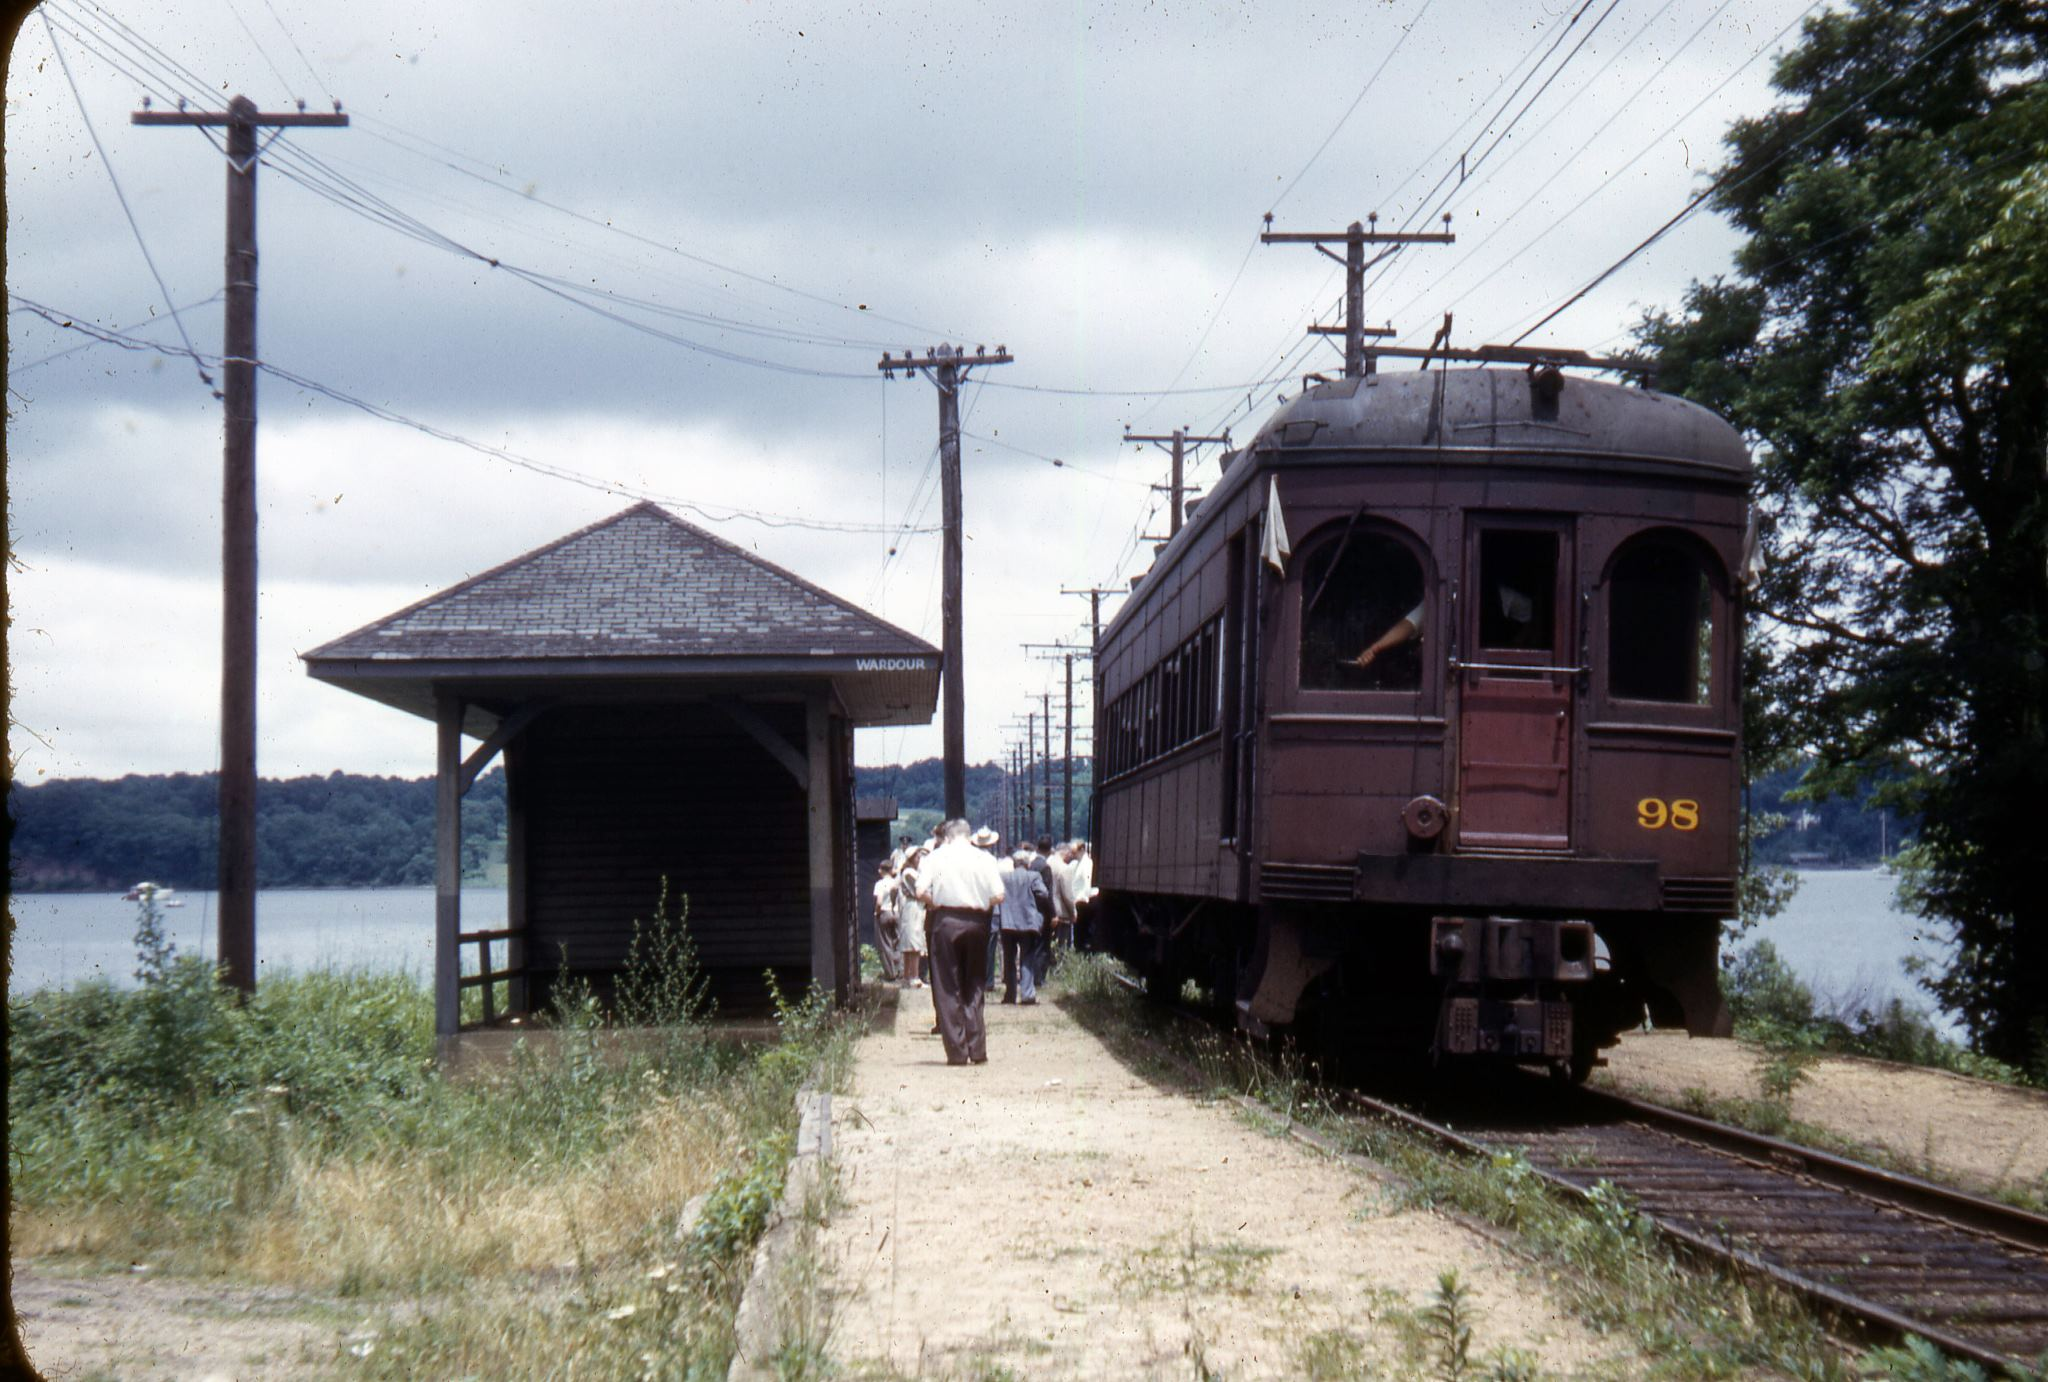 Baltimore & Annapolis Railroad Car #98 at Wardour Station. Date: 1940s. Source: Lee Rogers Collection.